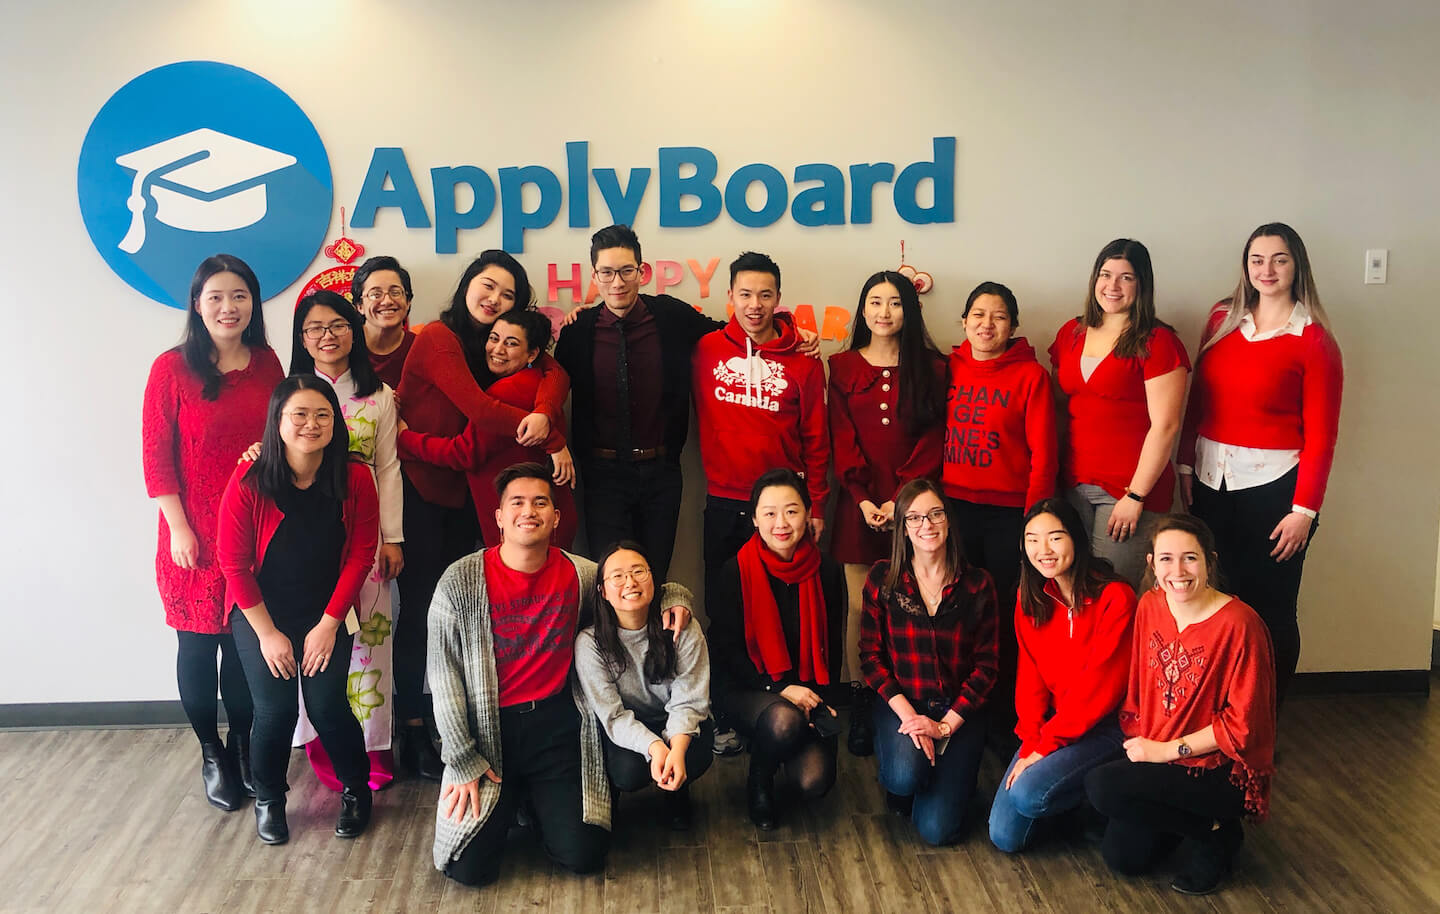 ApplyBoard staff wearing red at the office Lunar New Year celebration